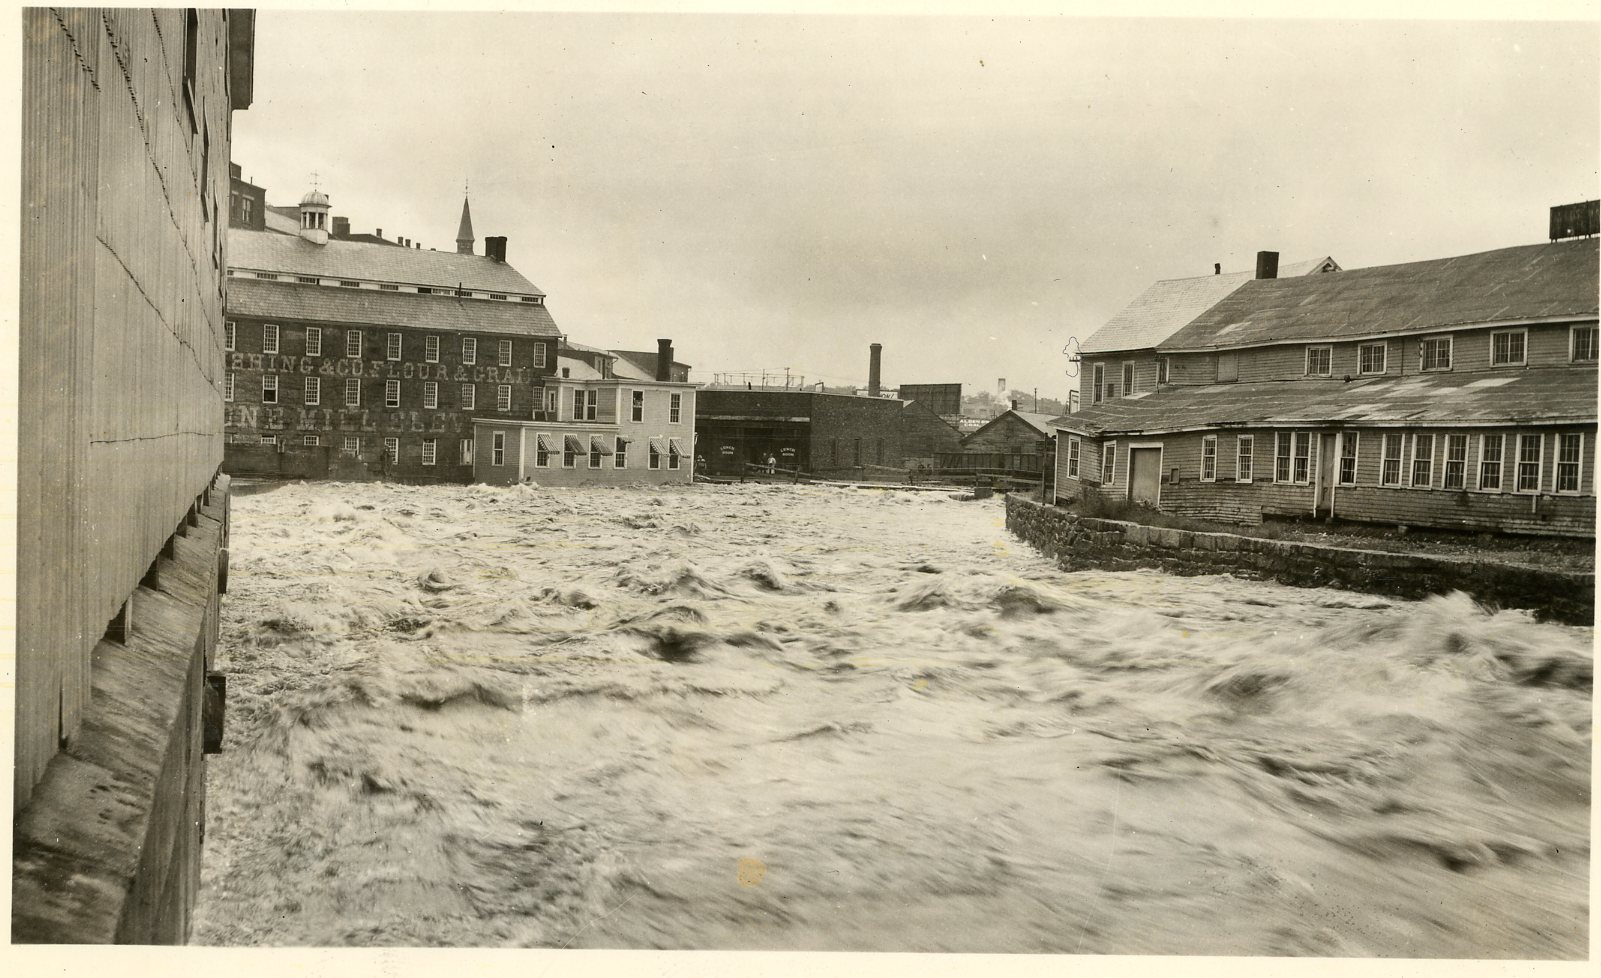 Fitchburg mills bordering the Nashua, Hurricane of 1938